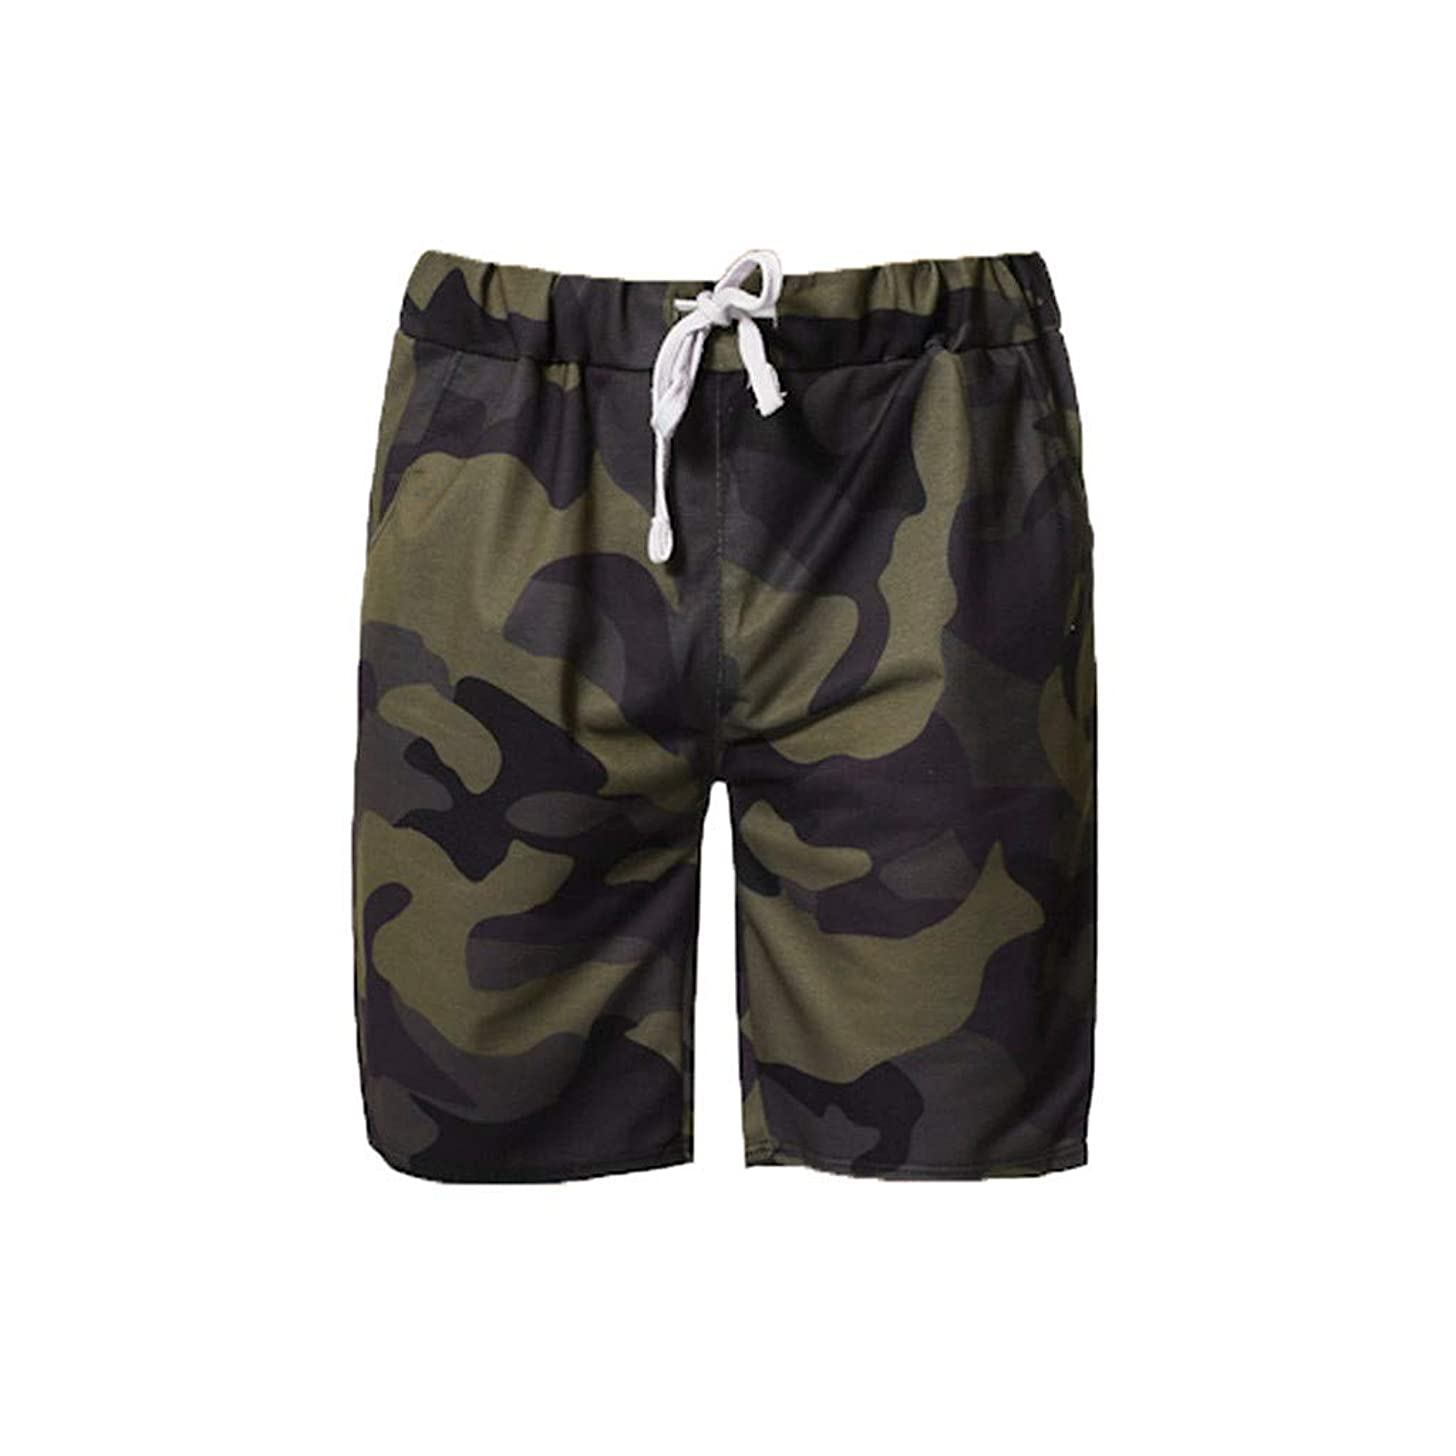 LUCAMORE Men's Camouflage Outdoor Shorts Elastic Waist Drawstring Jogger Gym Active Shorts